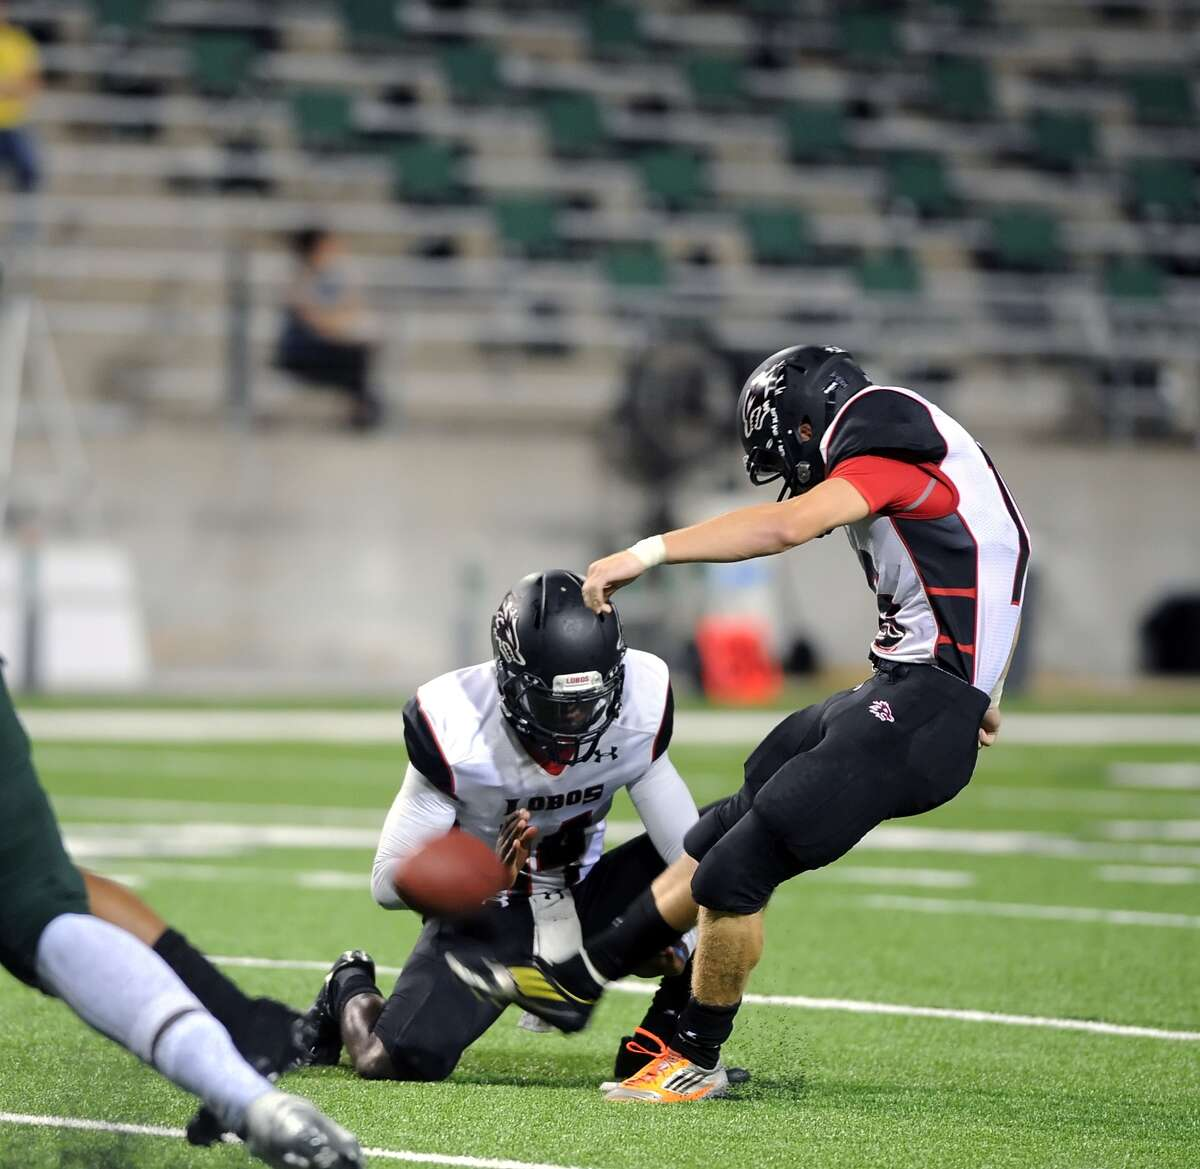 Langham Creek and Cy Falls football teams met at the Berry Center, 9-11-2014, for a 17-5A District contest. Langham Creek won the contest, 43-39. Right, Langham place kicker Joel Scarbrough (16) kicked an extra point as Paul Watson (14) holds the ball.